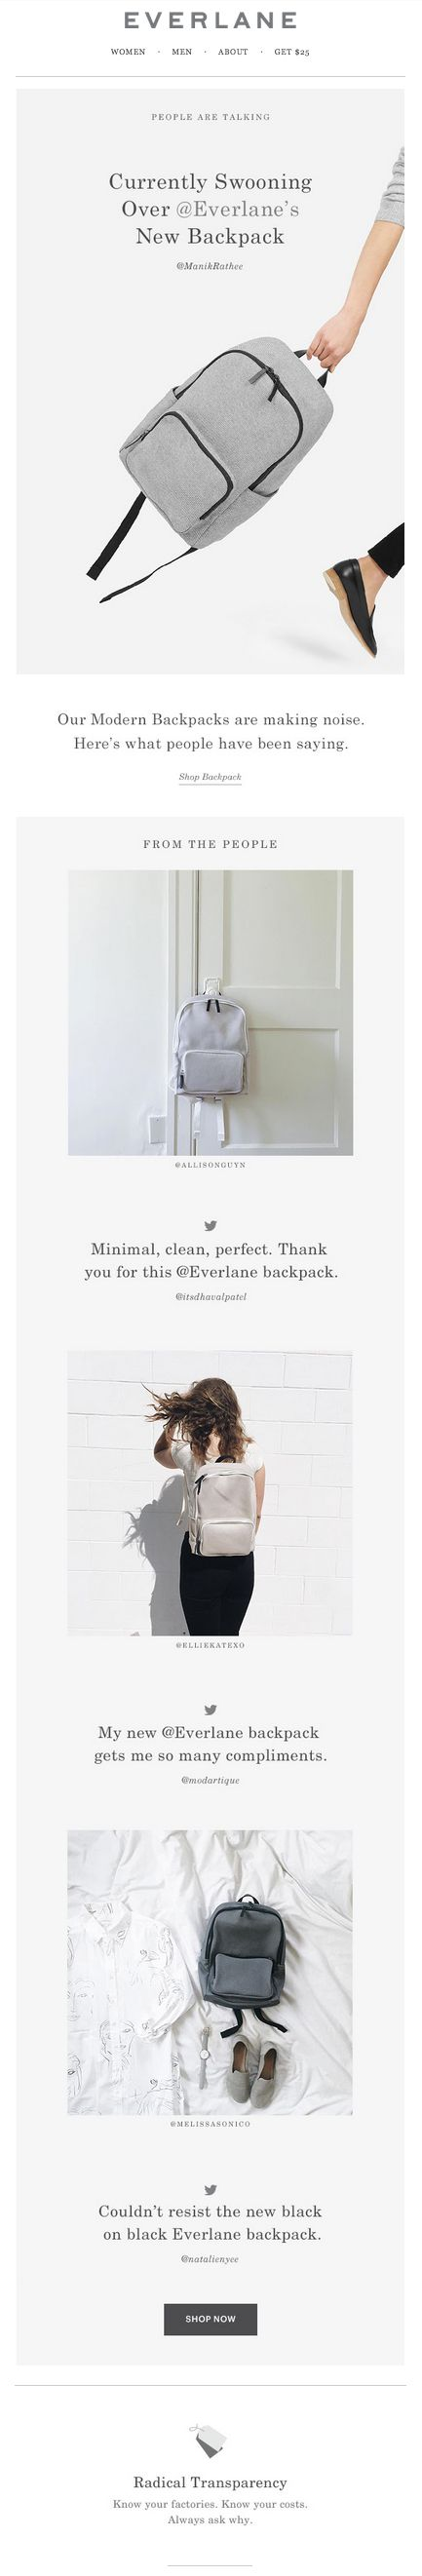 Everlane social proof back-to-school email. Subject line: Our-Backpack. Your Feedback.